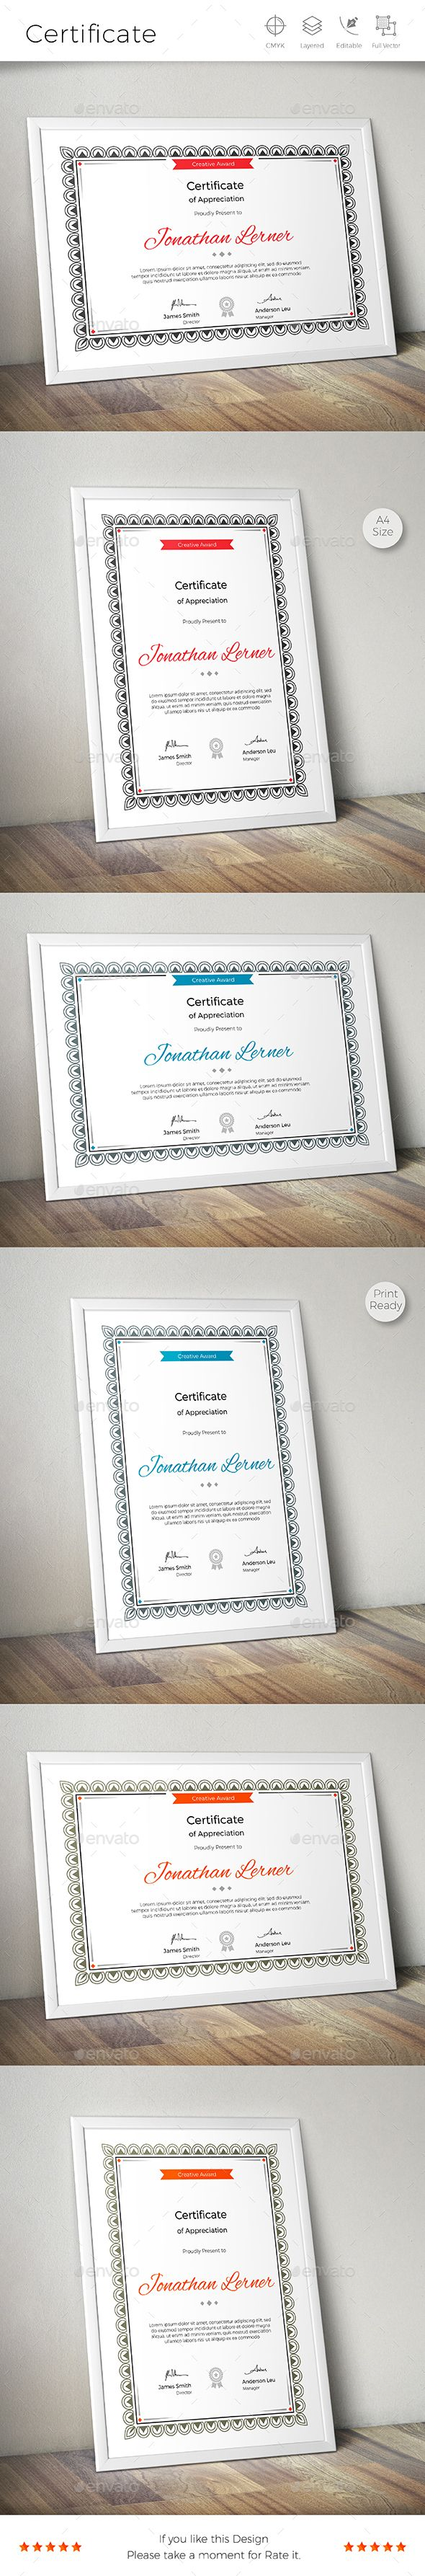 60 best 证书 images on Pinterest | Certificate templates ...